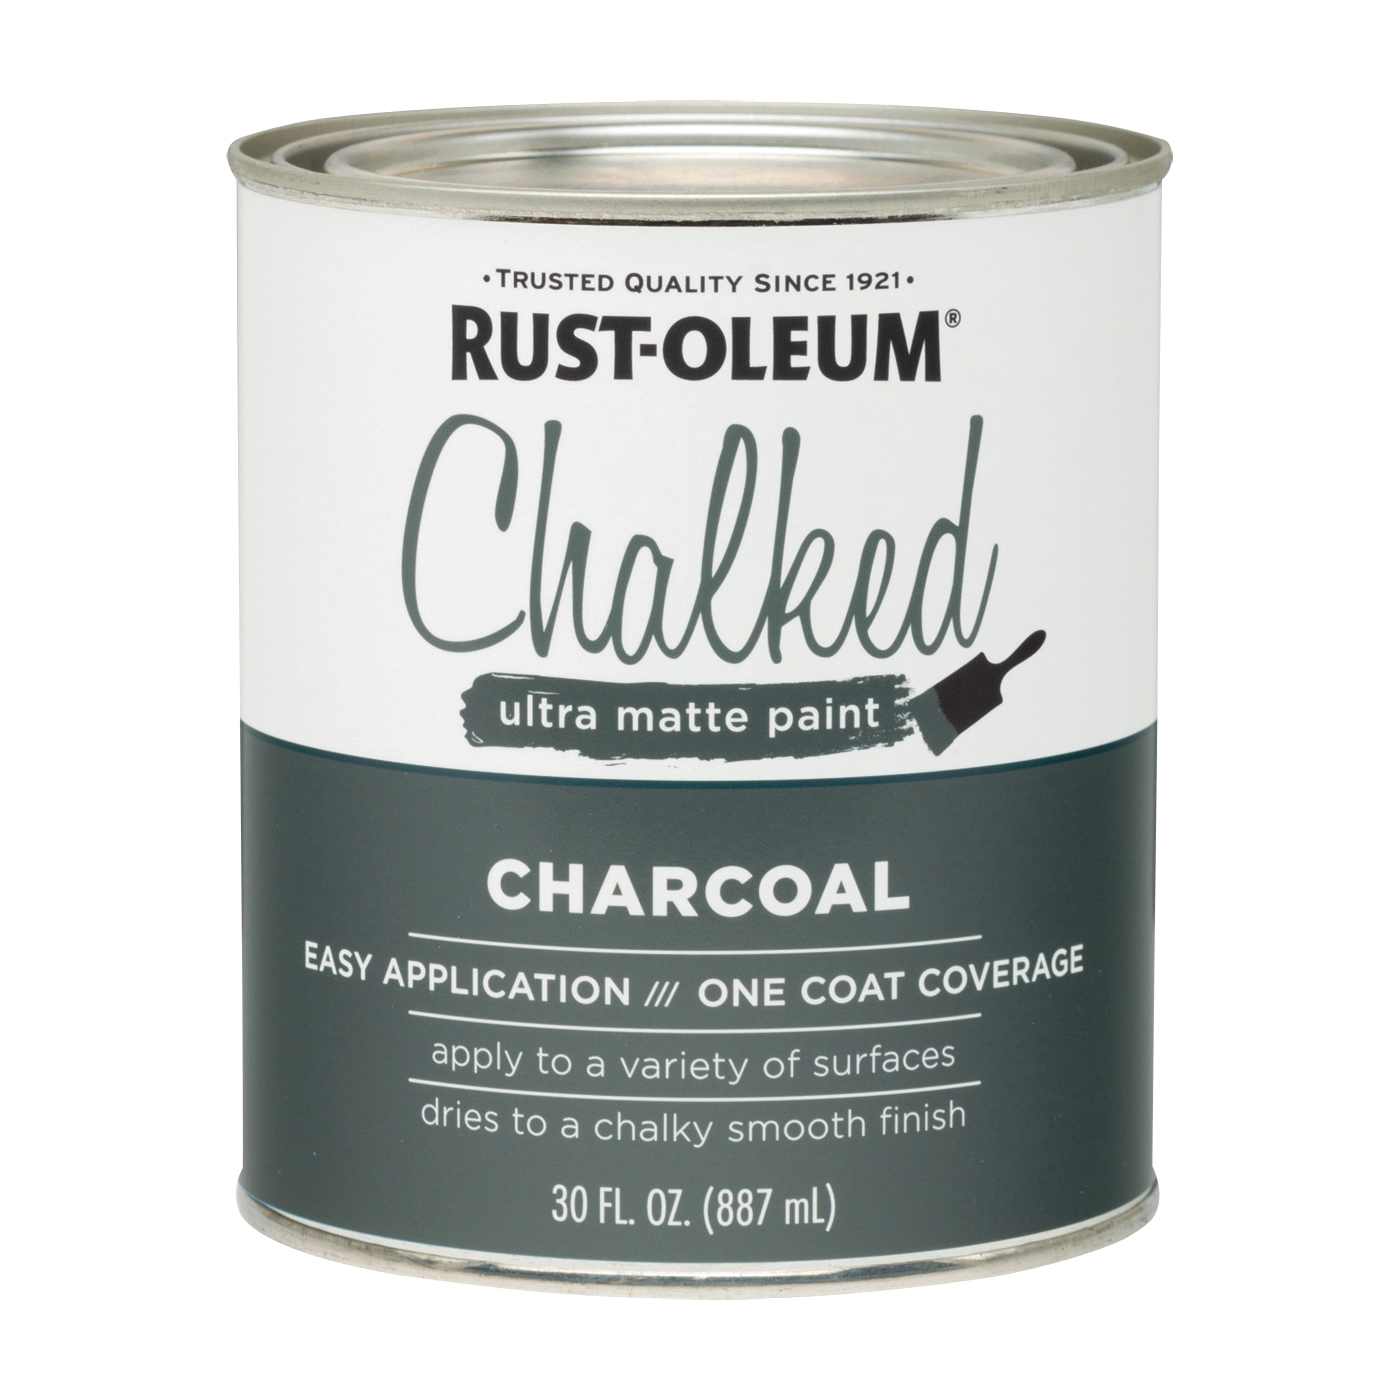 Picture of RUST-OLEUM Chalked 285144 Chalked Paint, Ultra Matte, Charcoal, 30 oz, Pint